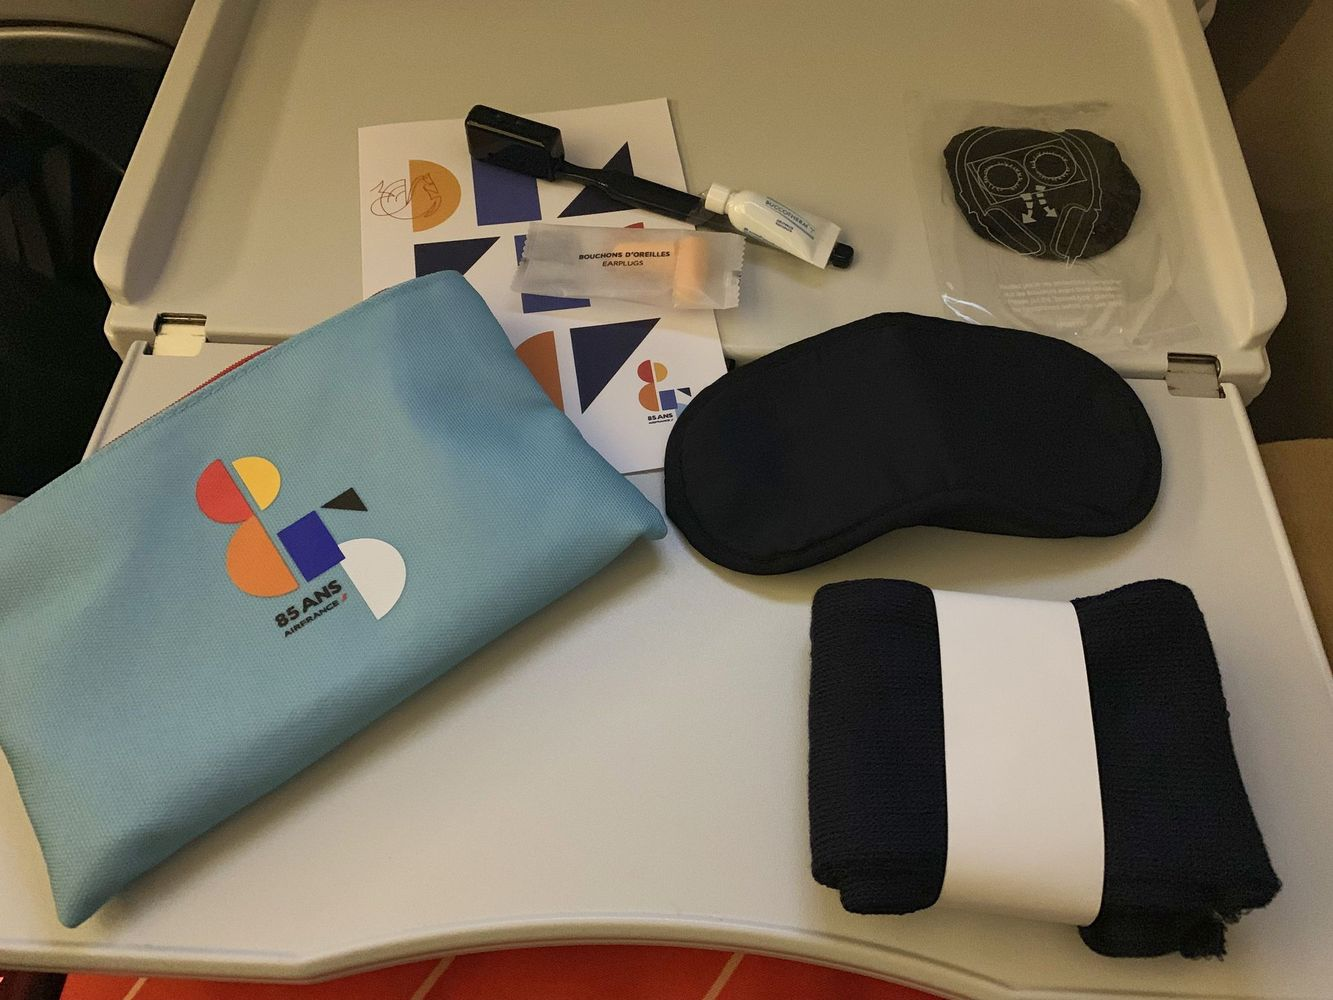 Air France Premium Economy Blue Pouch with In-flight Goodies